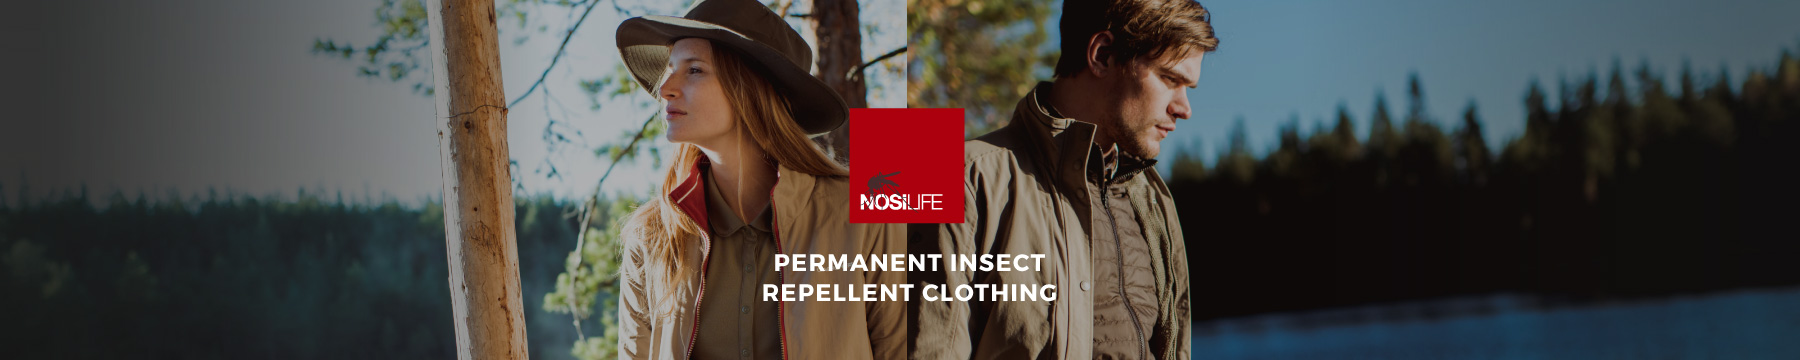 Nosilife Insect Repellent Clothing